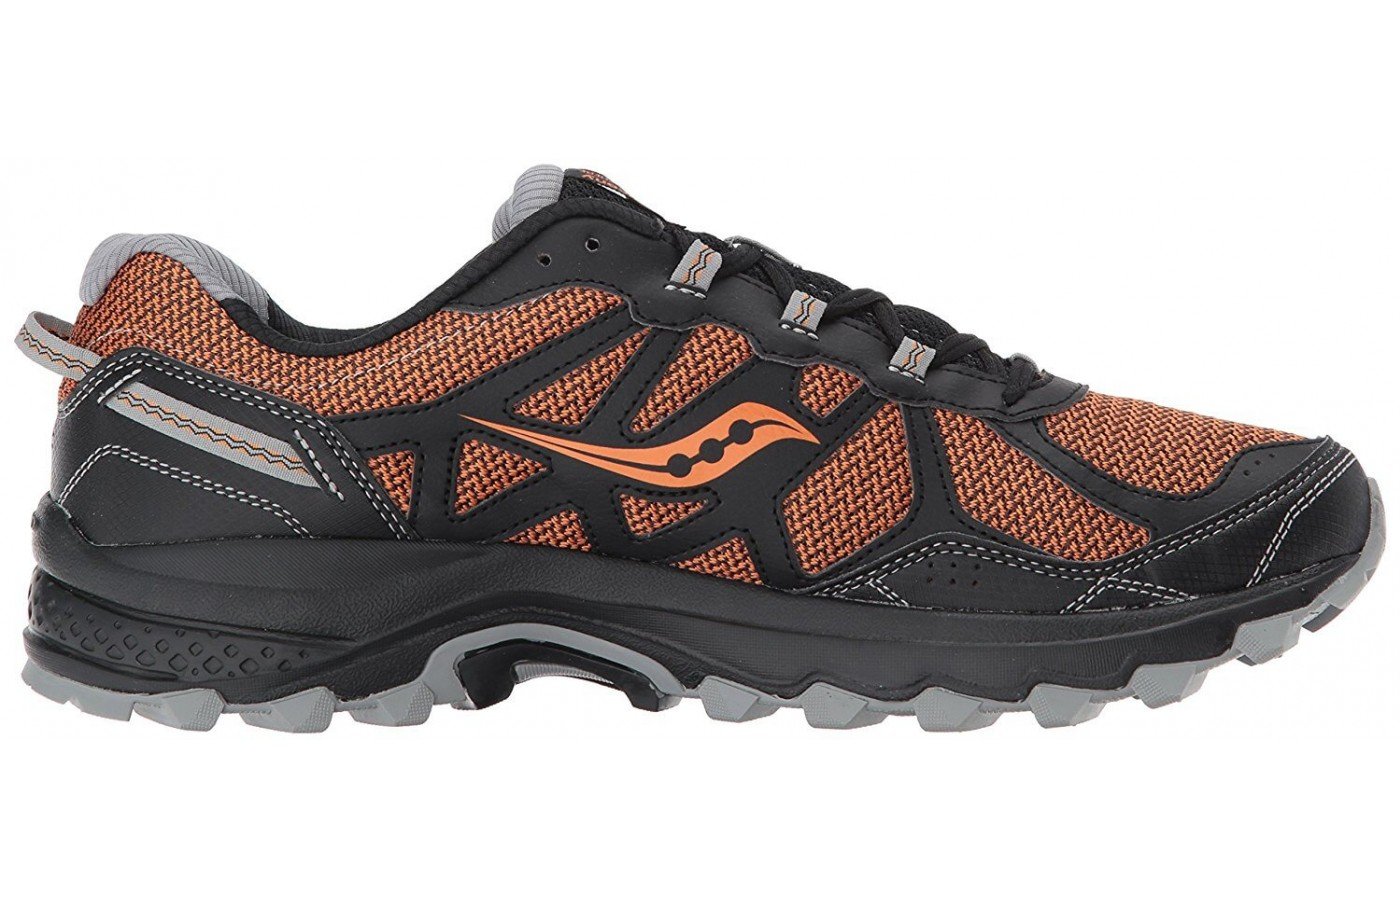 b7c798e17bff ... The Saucony Excursion TR11 features IMEVA midsole cushioning ...